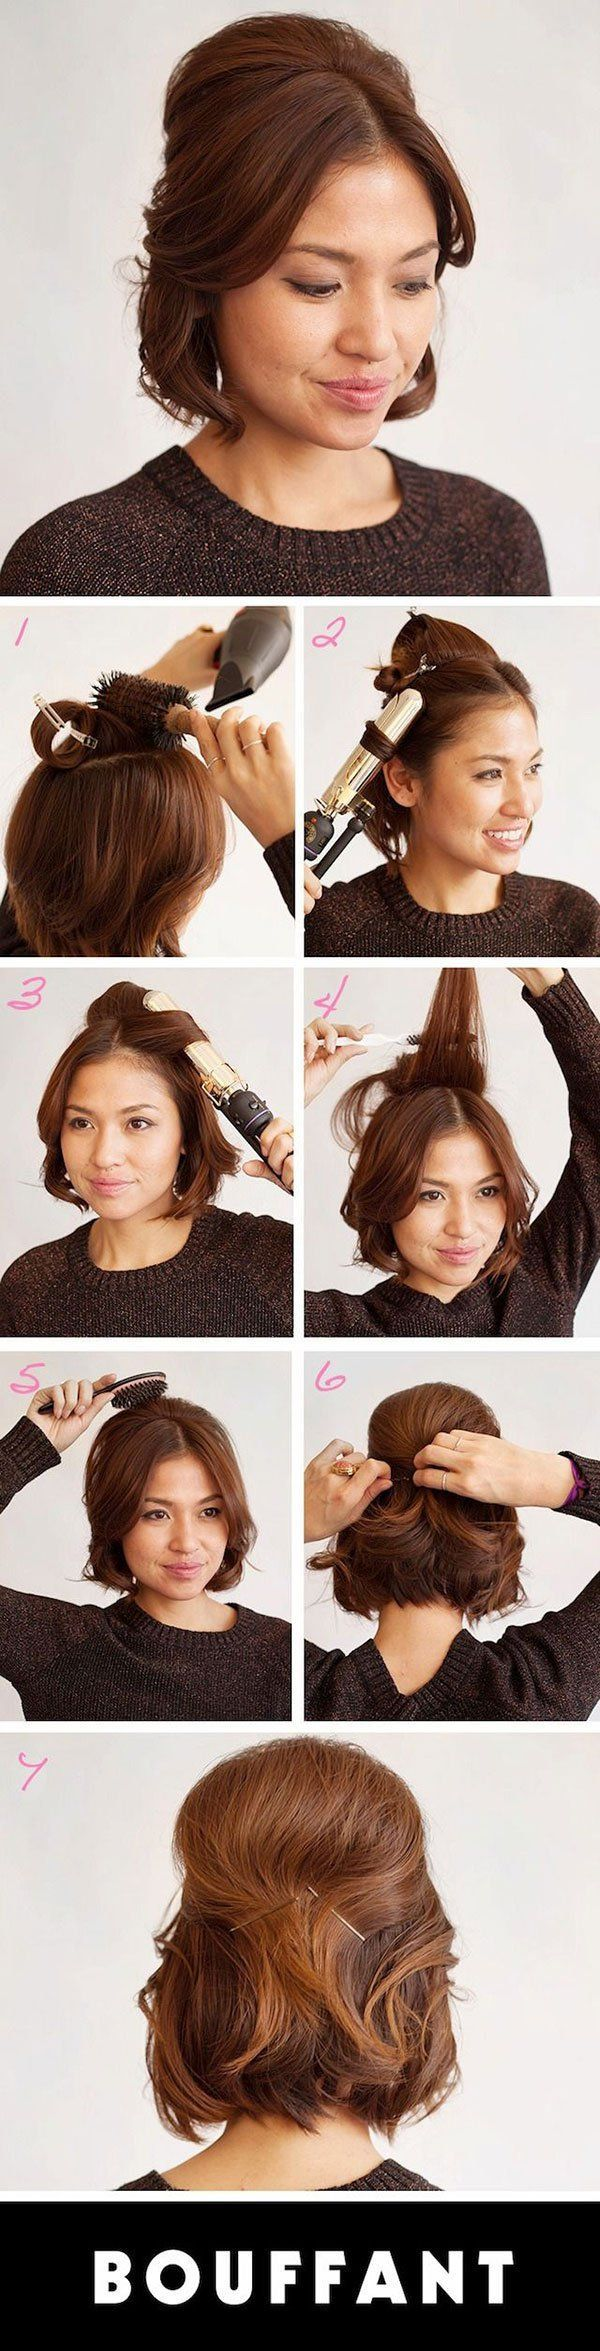 Easy Formal Hairstyles For Short Hair #diyhairstyles Easy formal hairstyles for short hair you can pull off in less than 2 minutes! Easy Formal Hairst...